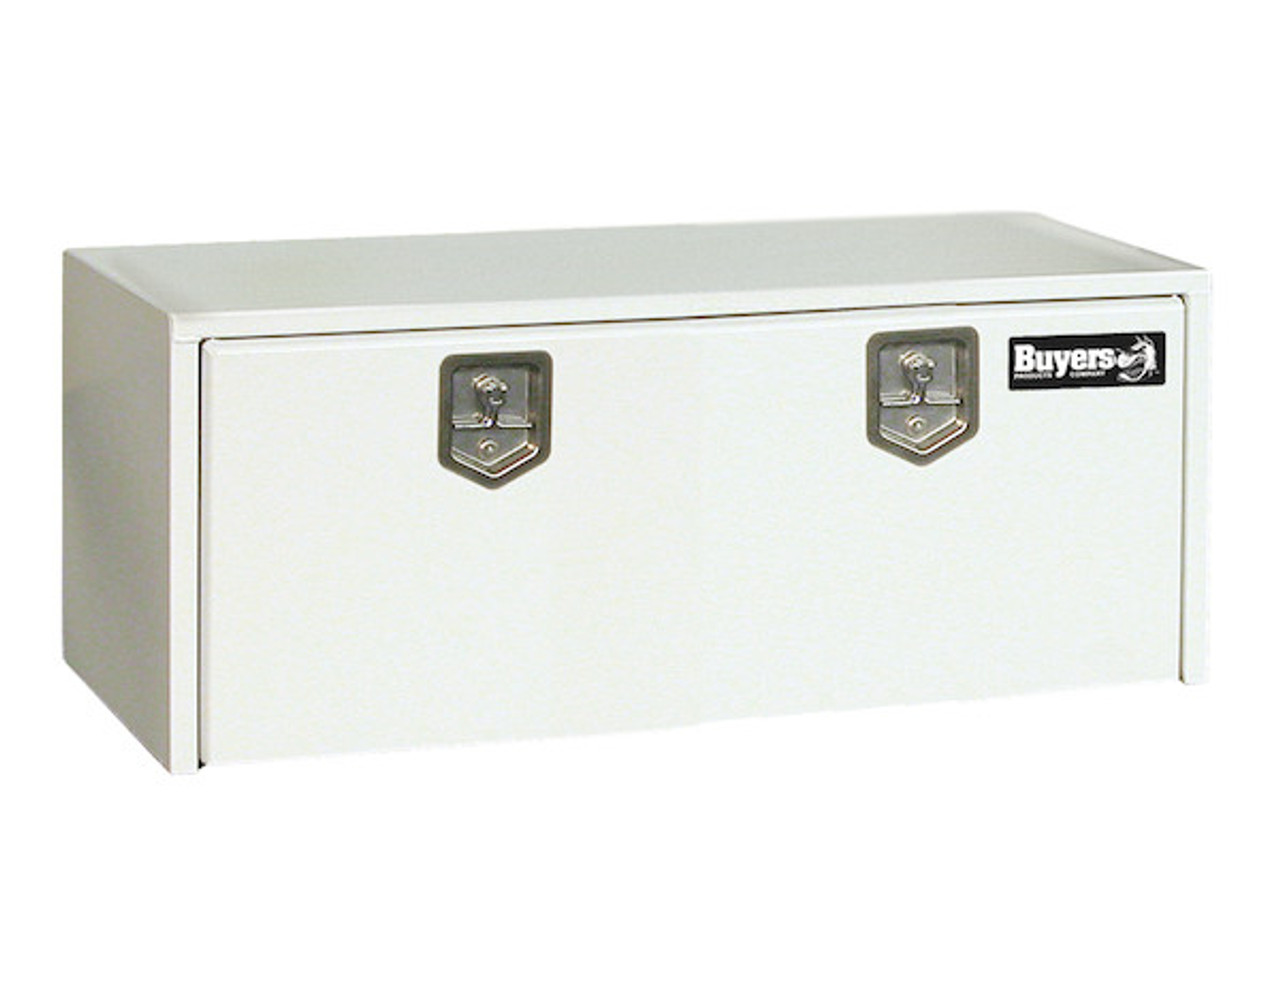 """1702415 BUYERS PRODUCTS WHITE STEEL UNDERBODY TRUCK TOOLBOX 18""""HX18""""DX60""""W"""